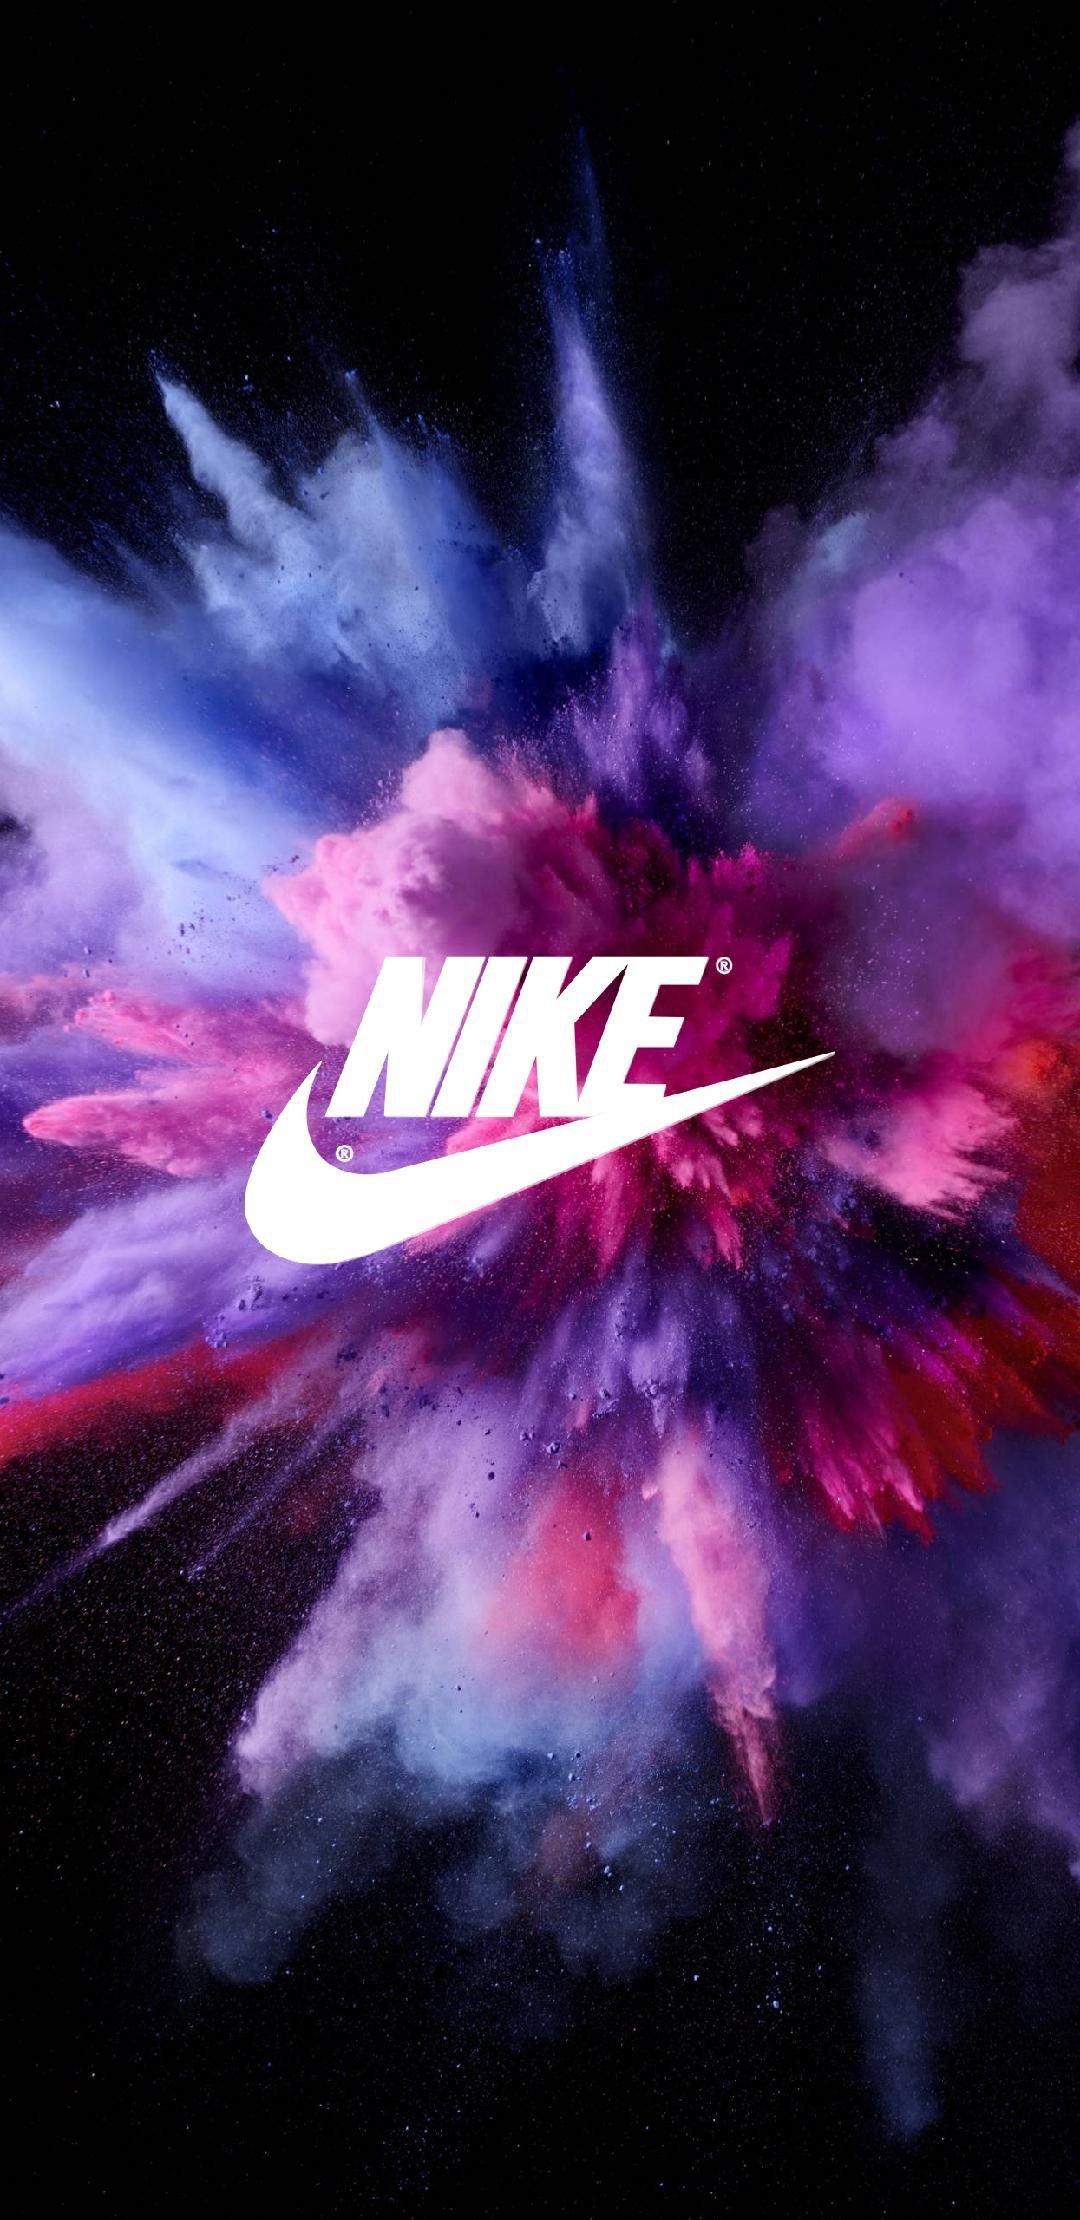 Pin by Ruby on Wallpapers Nike wallpaper iphone, Nike